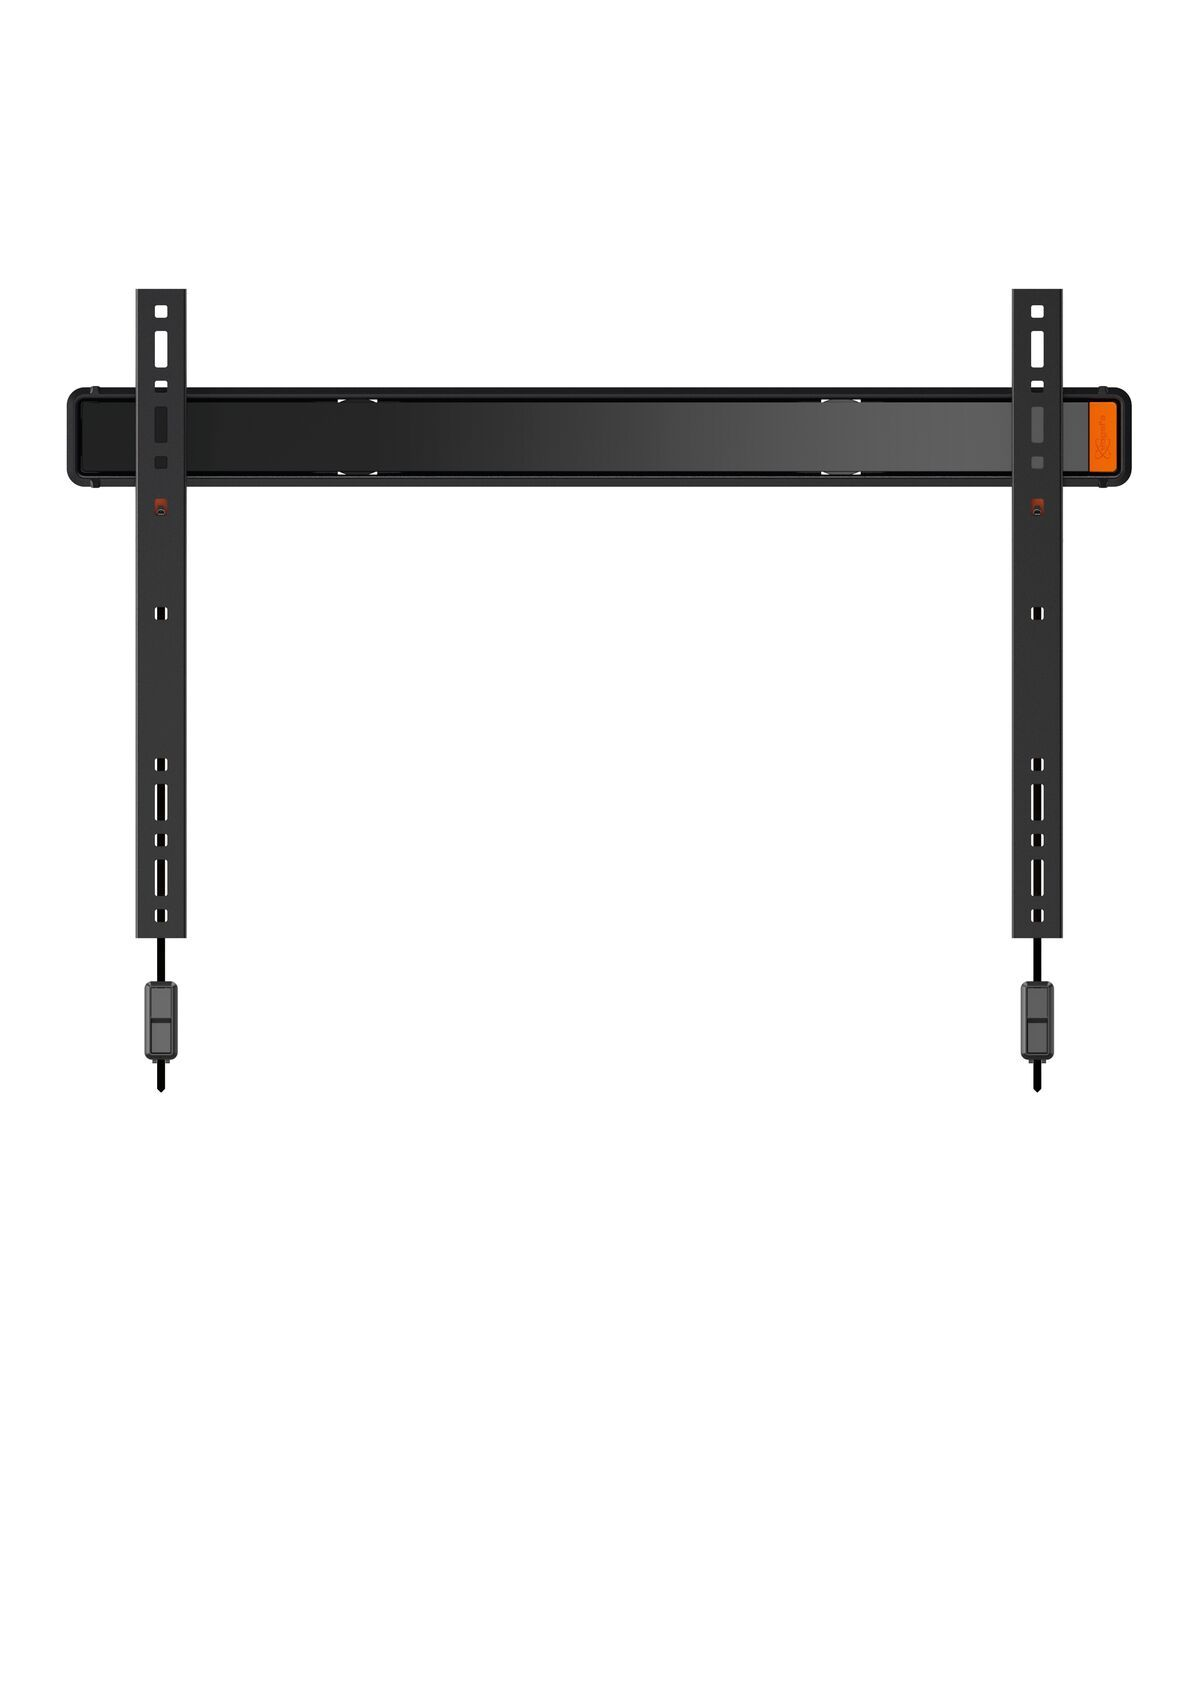 Vogel's WALL 2305 Fixed TV Wall Mount - Suitable for 40 up to 80 inch TVs up to kg - Front view